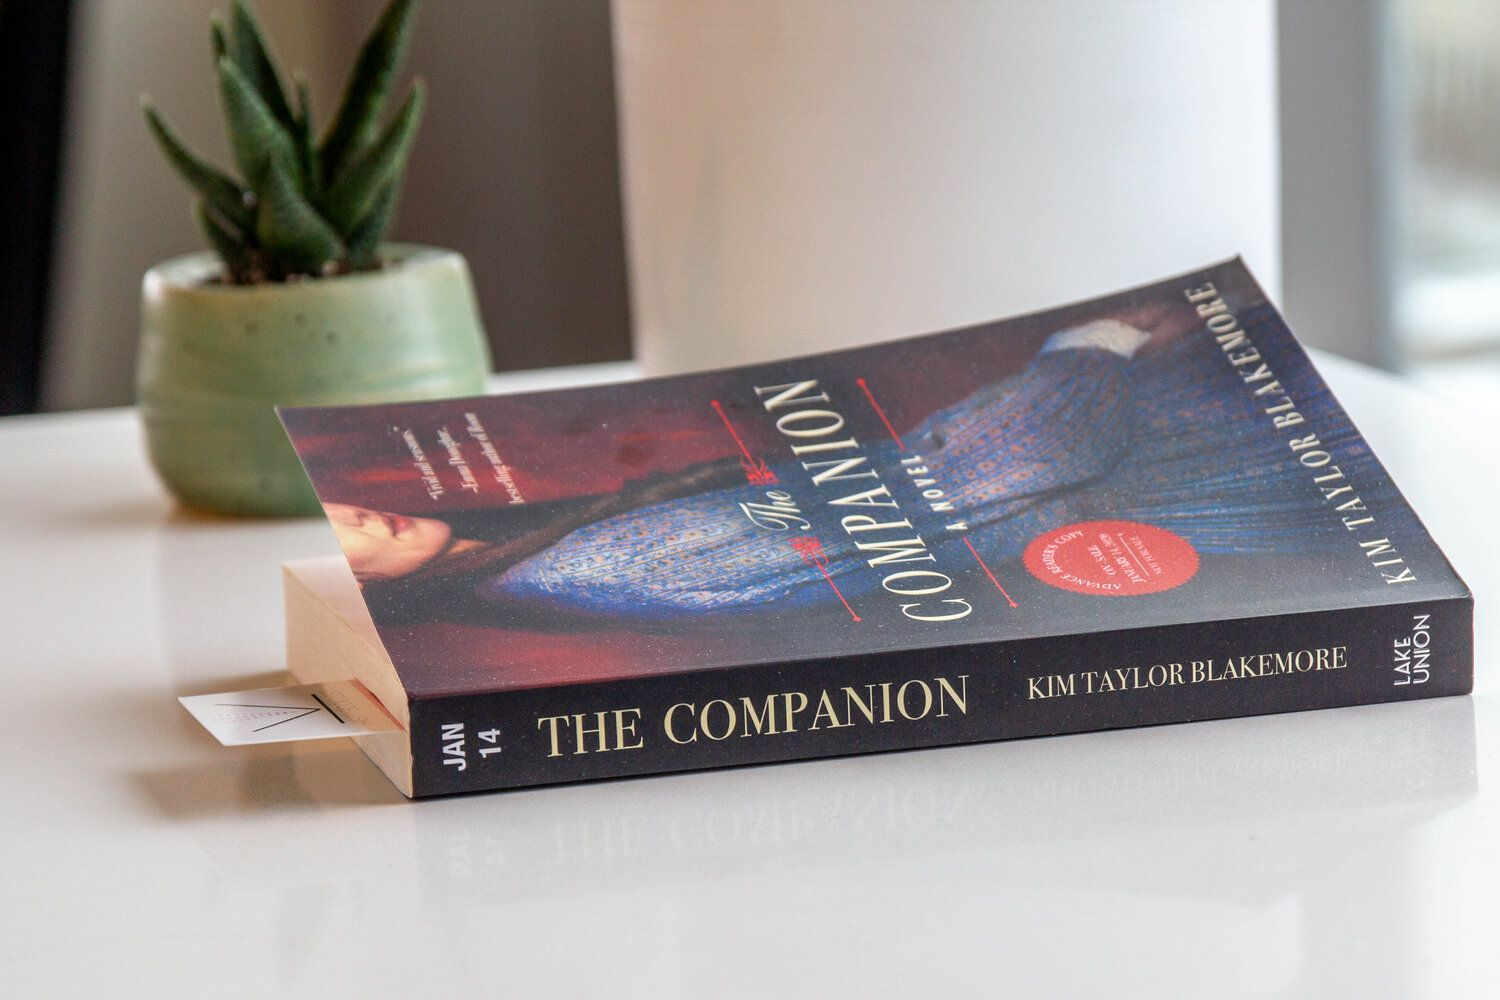 13+ The healer book review ideas in 2021